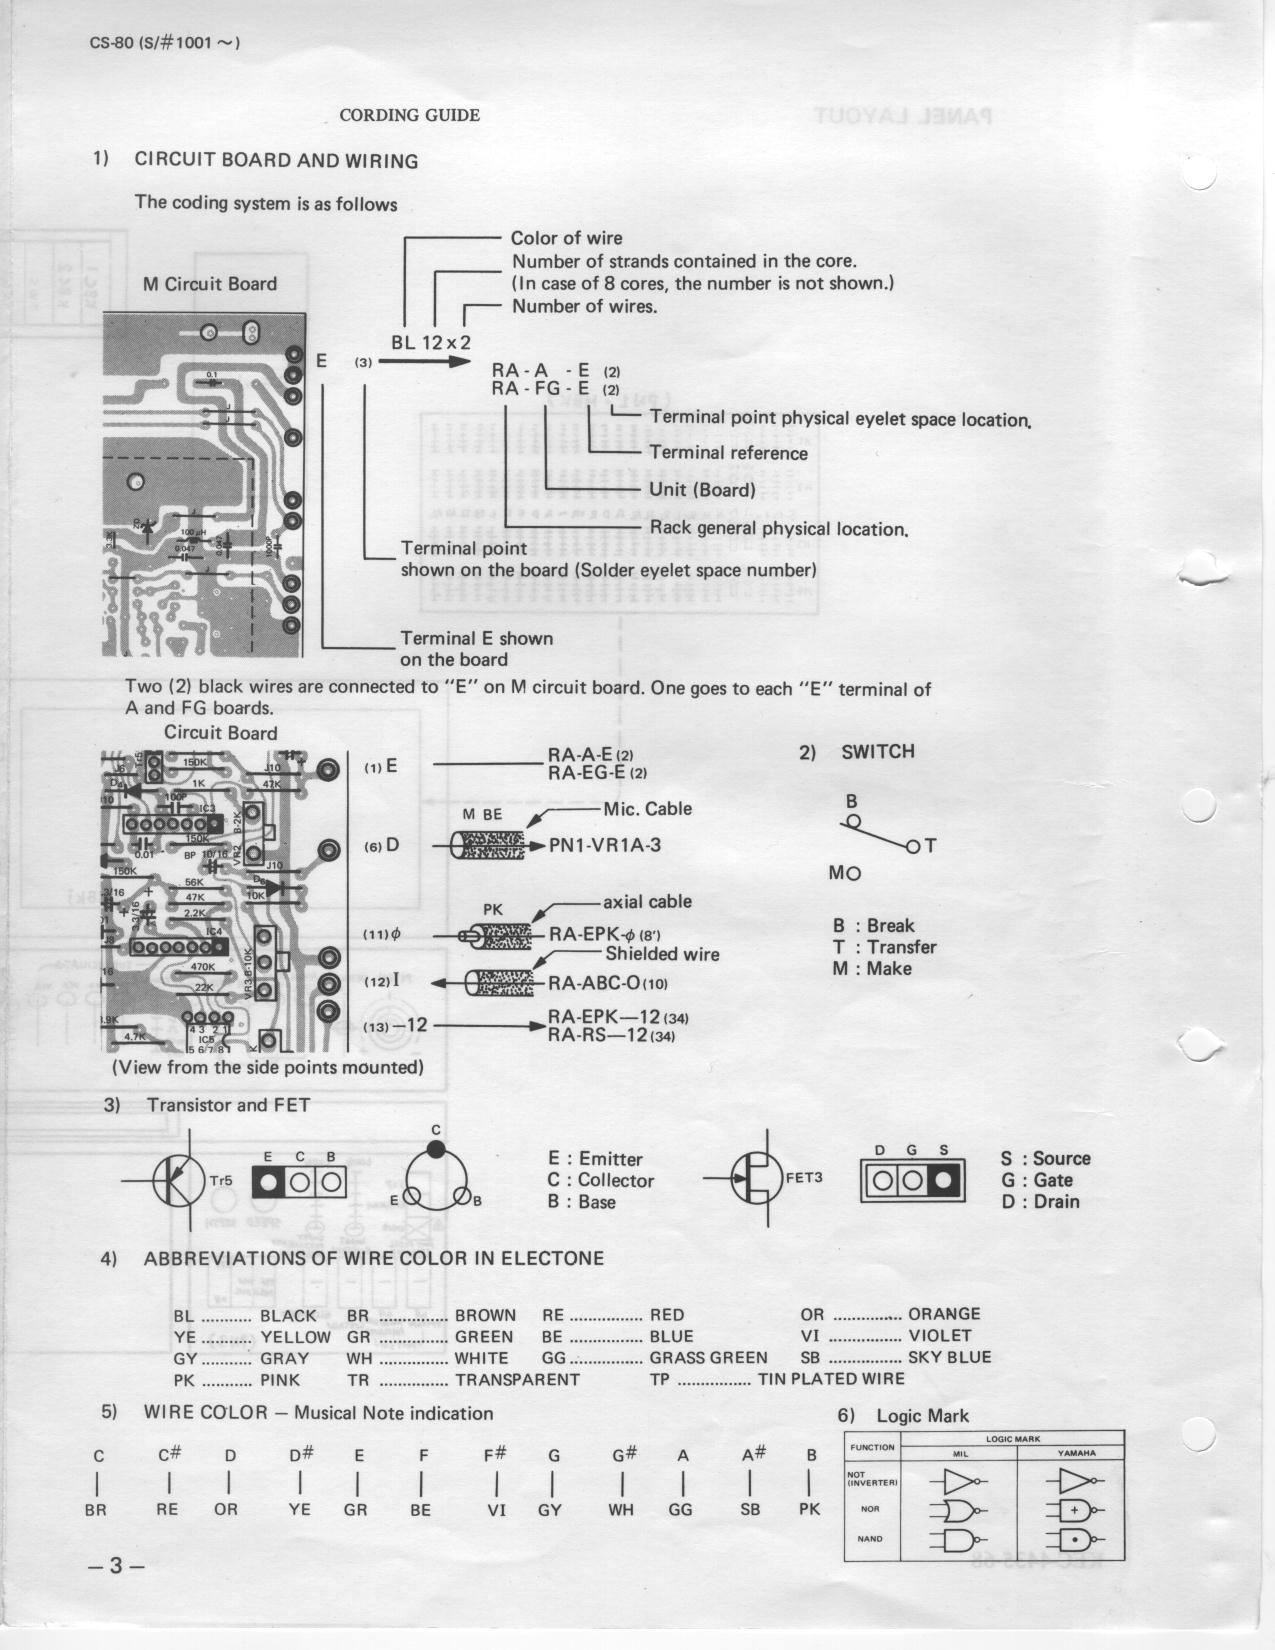 Assembly Plan Circuit Board Schematics Color Codes For Wiring To The Boards